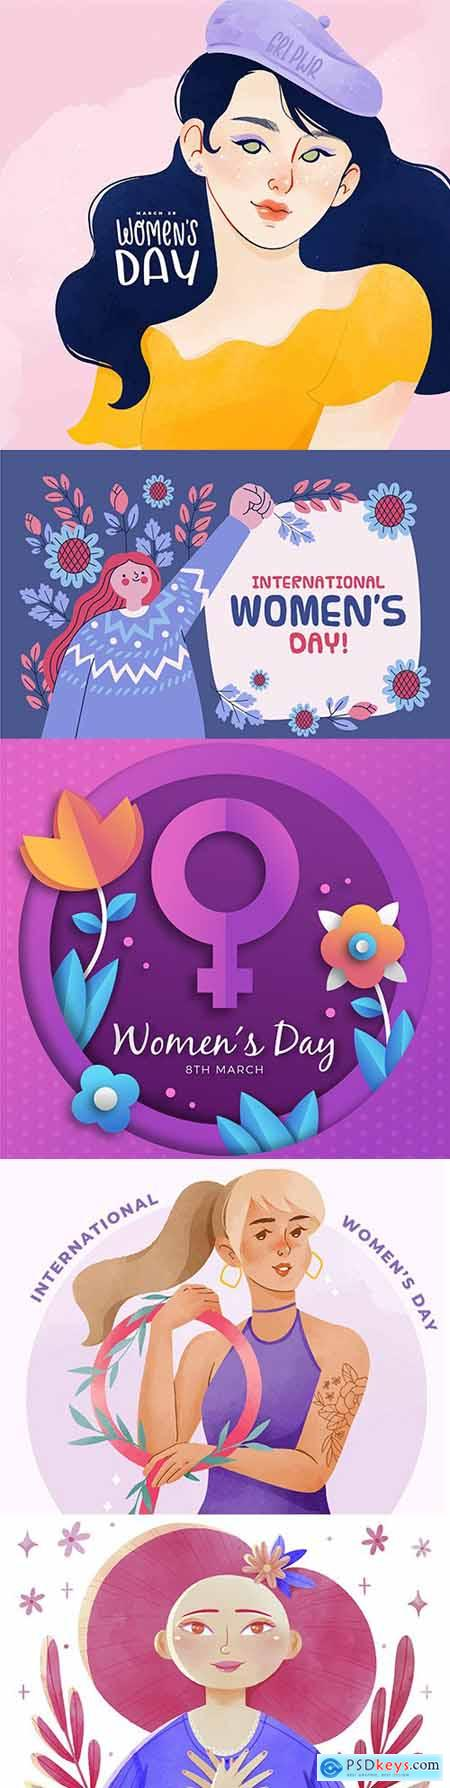 Happy Womens Day March 8 watercolor illustration 3